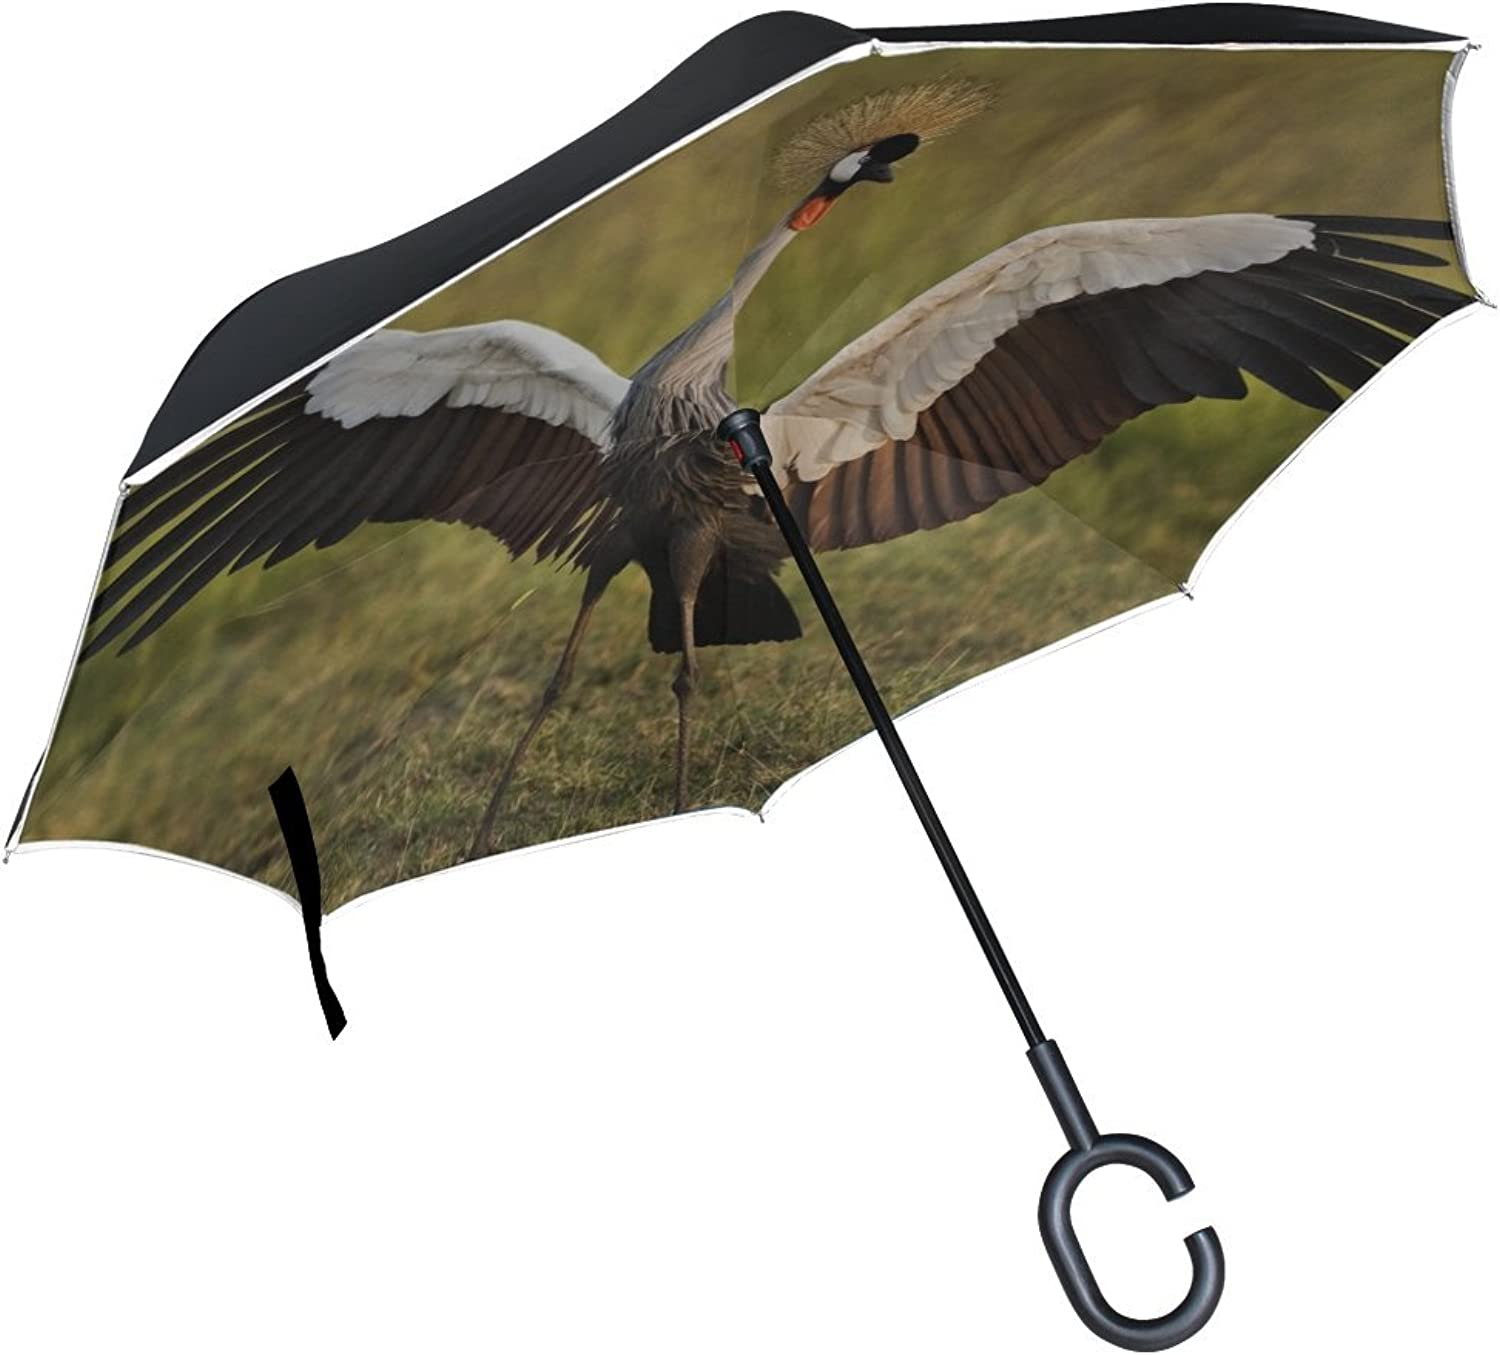 Grass Cranes Birds Umbrella Ingreened Studio Rh Feathers